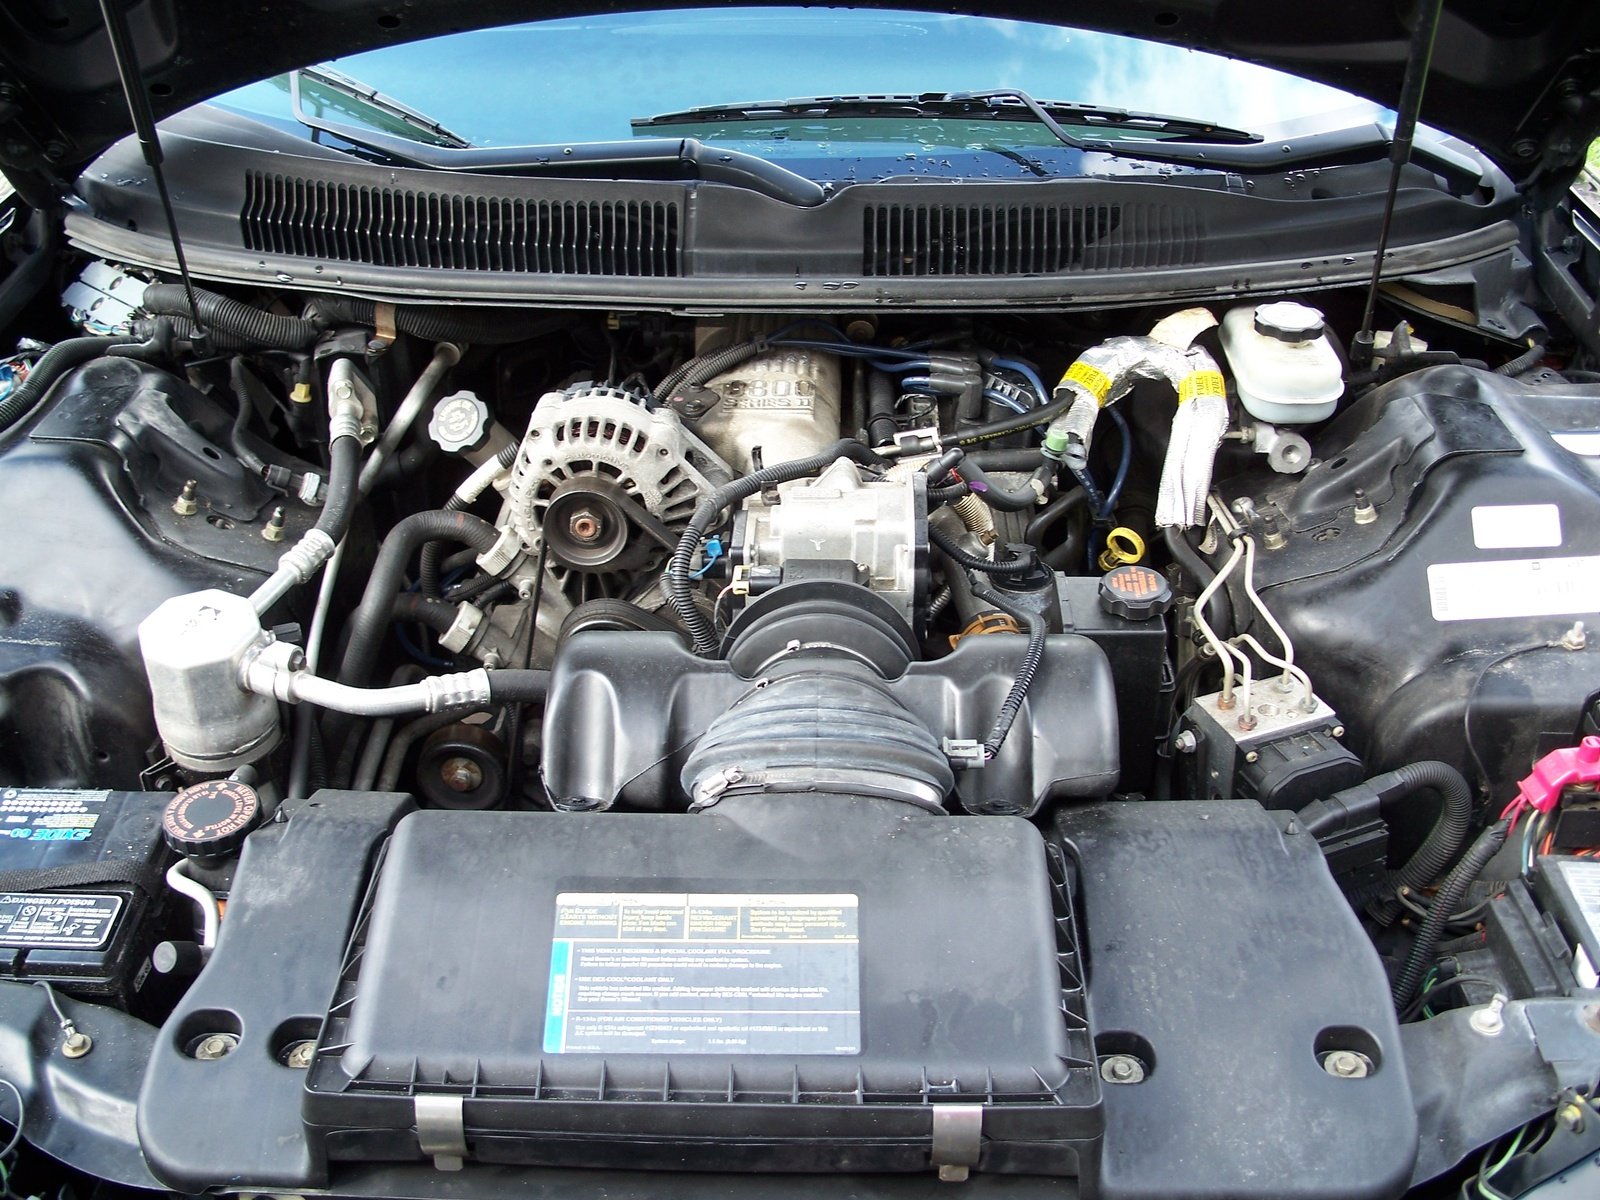 similiar pontiac firebird v6 engine keywords pontiac firebird v6 engine on 91 s10 4 3 tbi engine wiring diagram